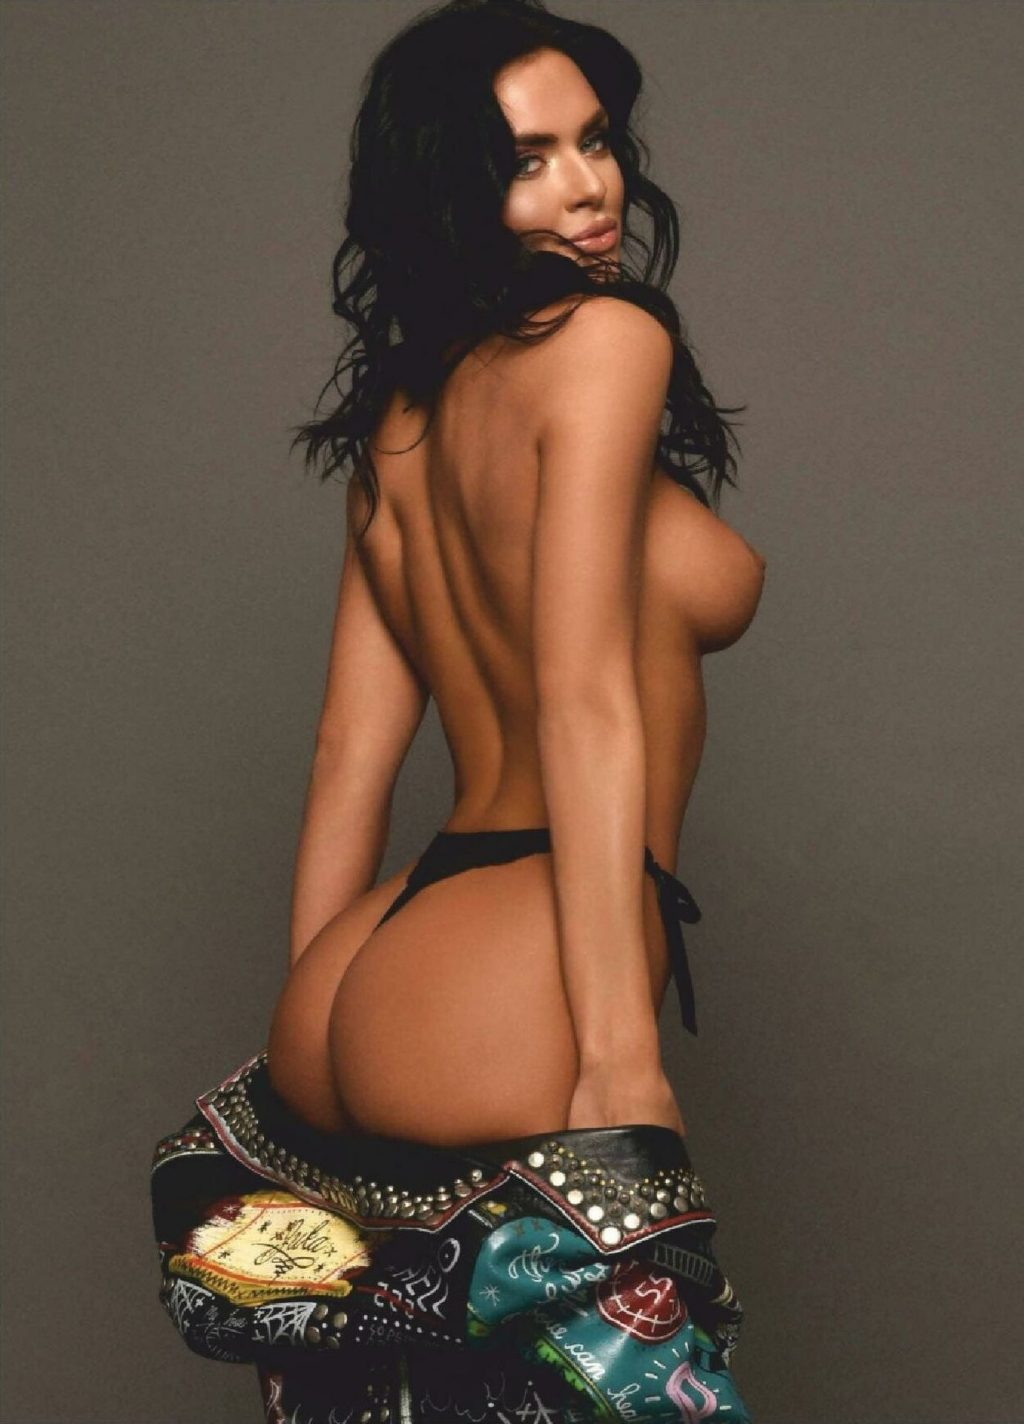 Kelsie Jean Smeby Naked 5 Photos ʖ The Fappening